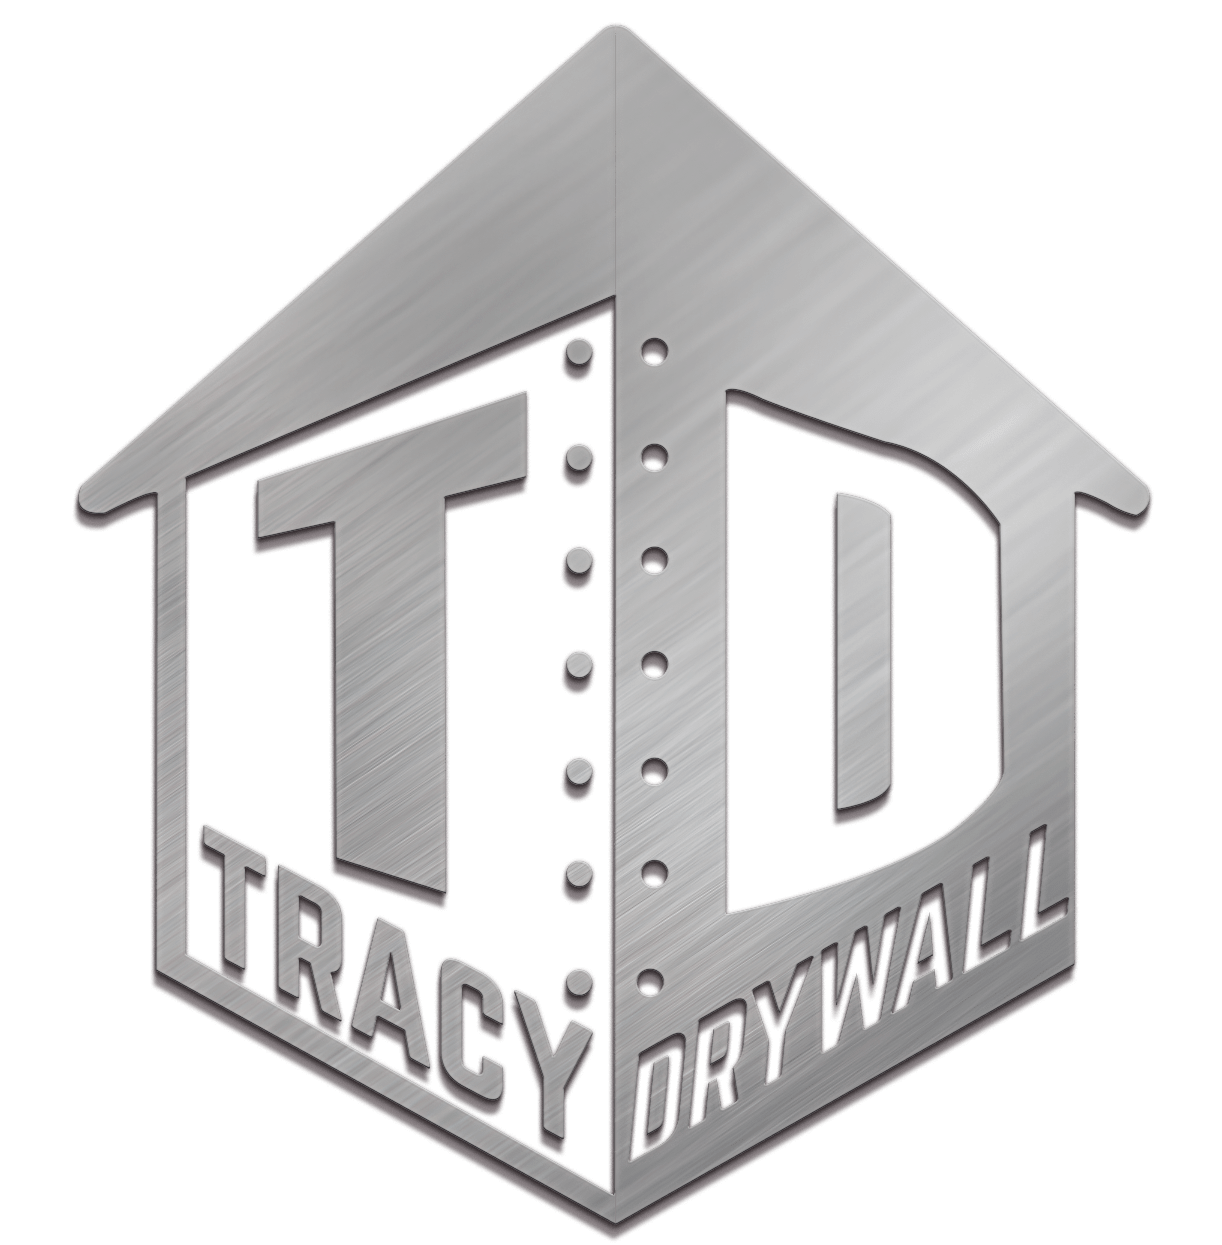 Tracy Drywall